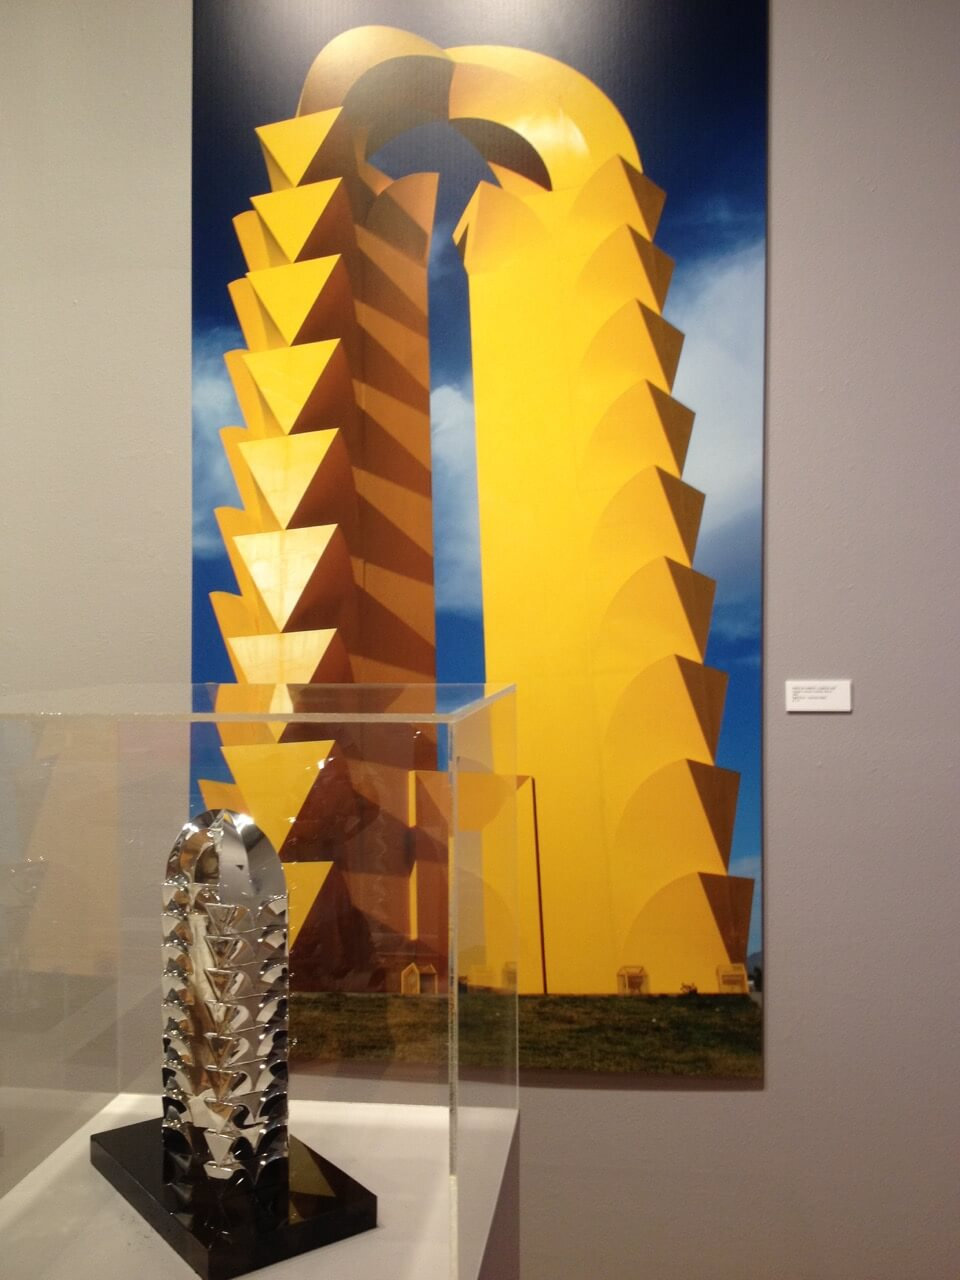 """Photo of """"La Puerta de Torreón"""" on display at """"Sebastián: The Geometry of Space and Time"""""""